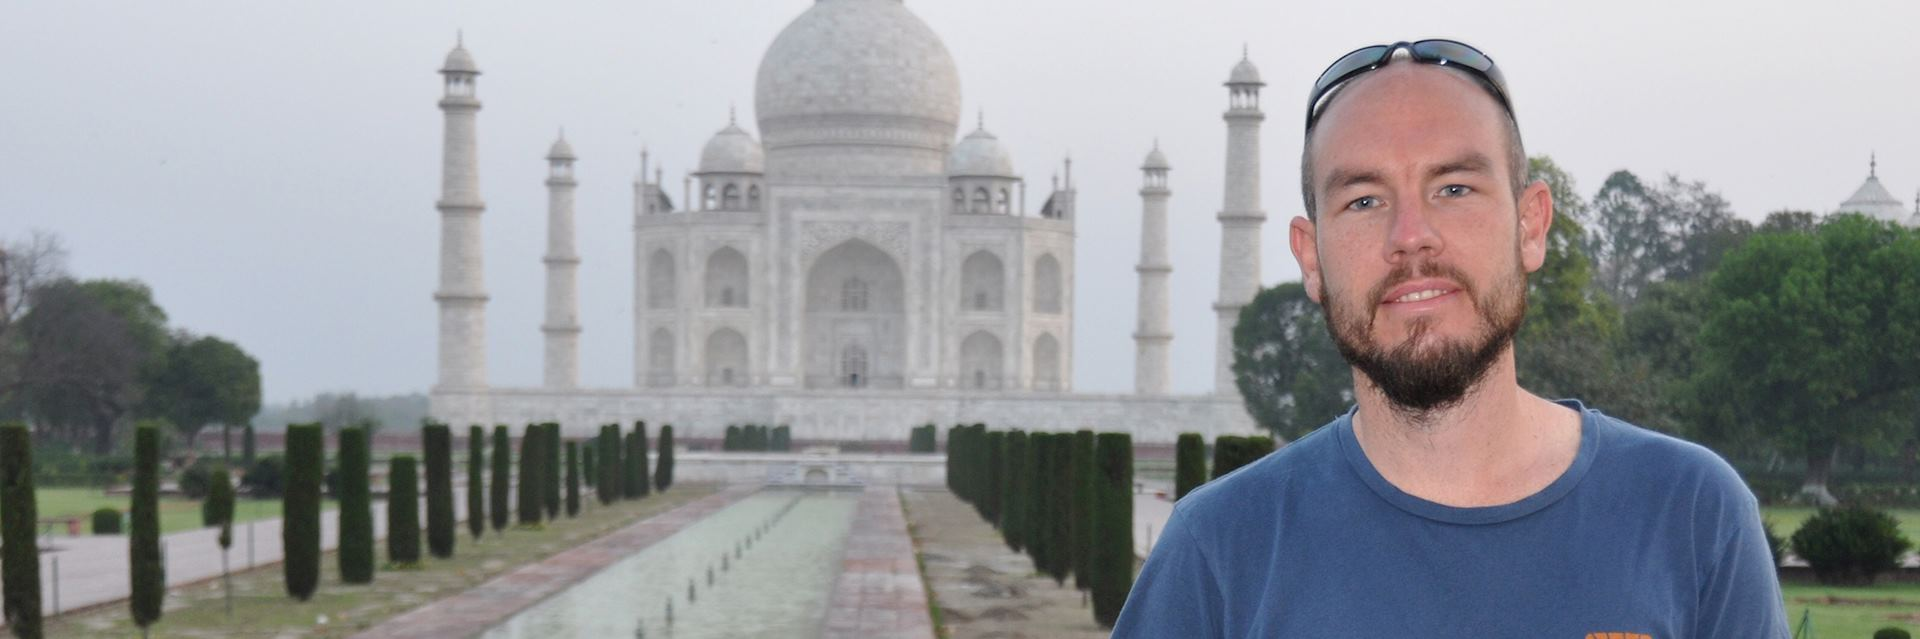 Graham at the Taj Mahal, Agra